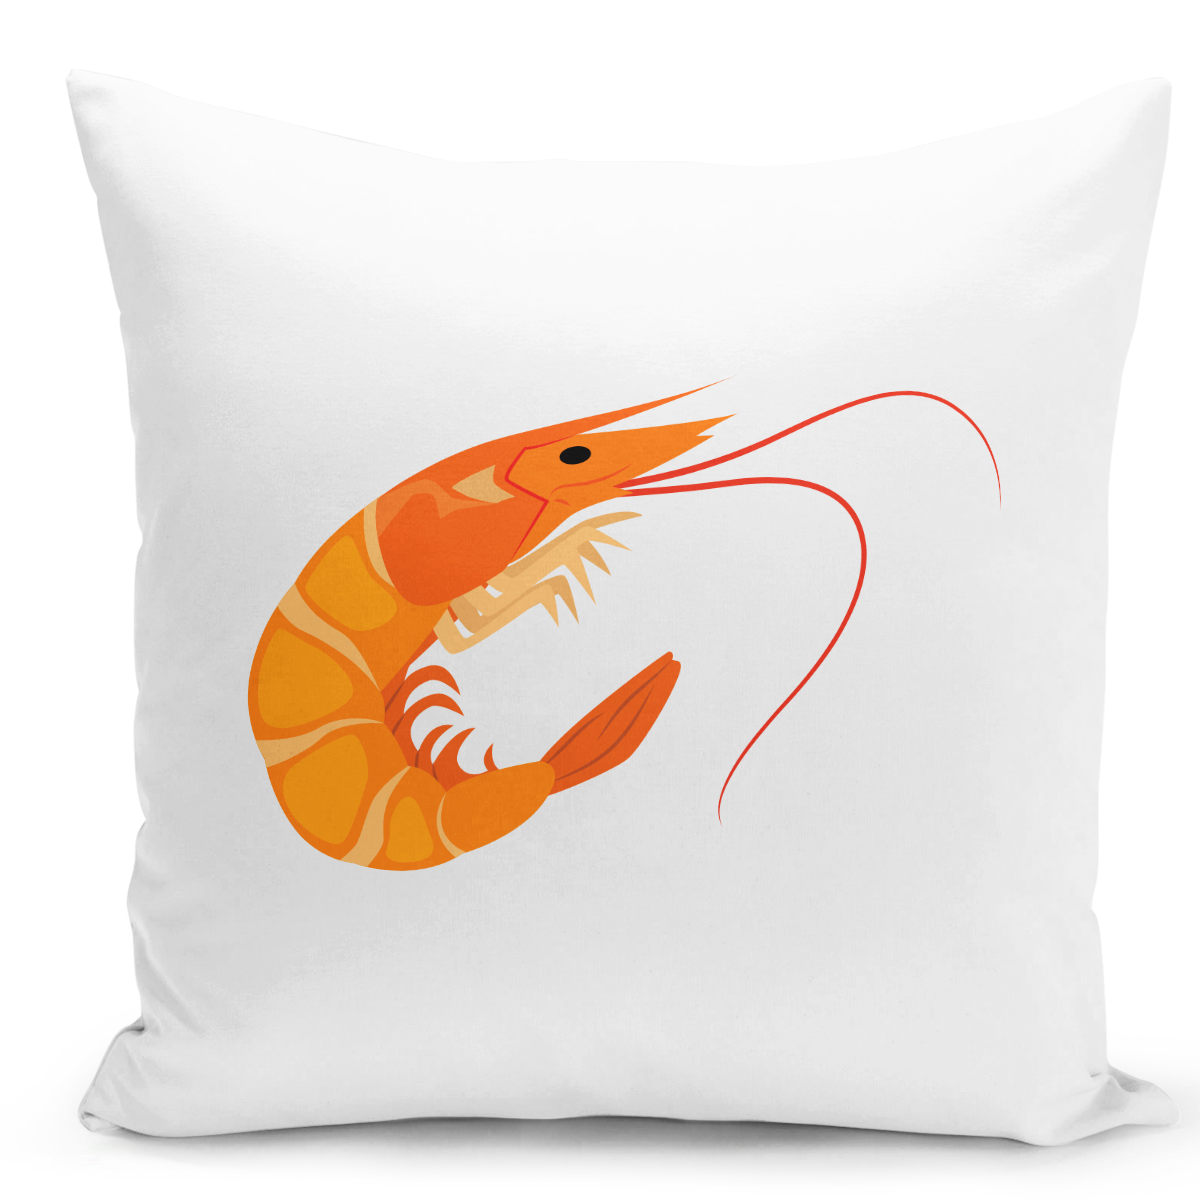 White-Throw-Pillow-Shrimp-Marine-Animals-Sea-Life-Pillow-Nautical-Theme---Pure-White-Printed-16-x-16-inch-Square-Home-Decor-Couch-Pillow-